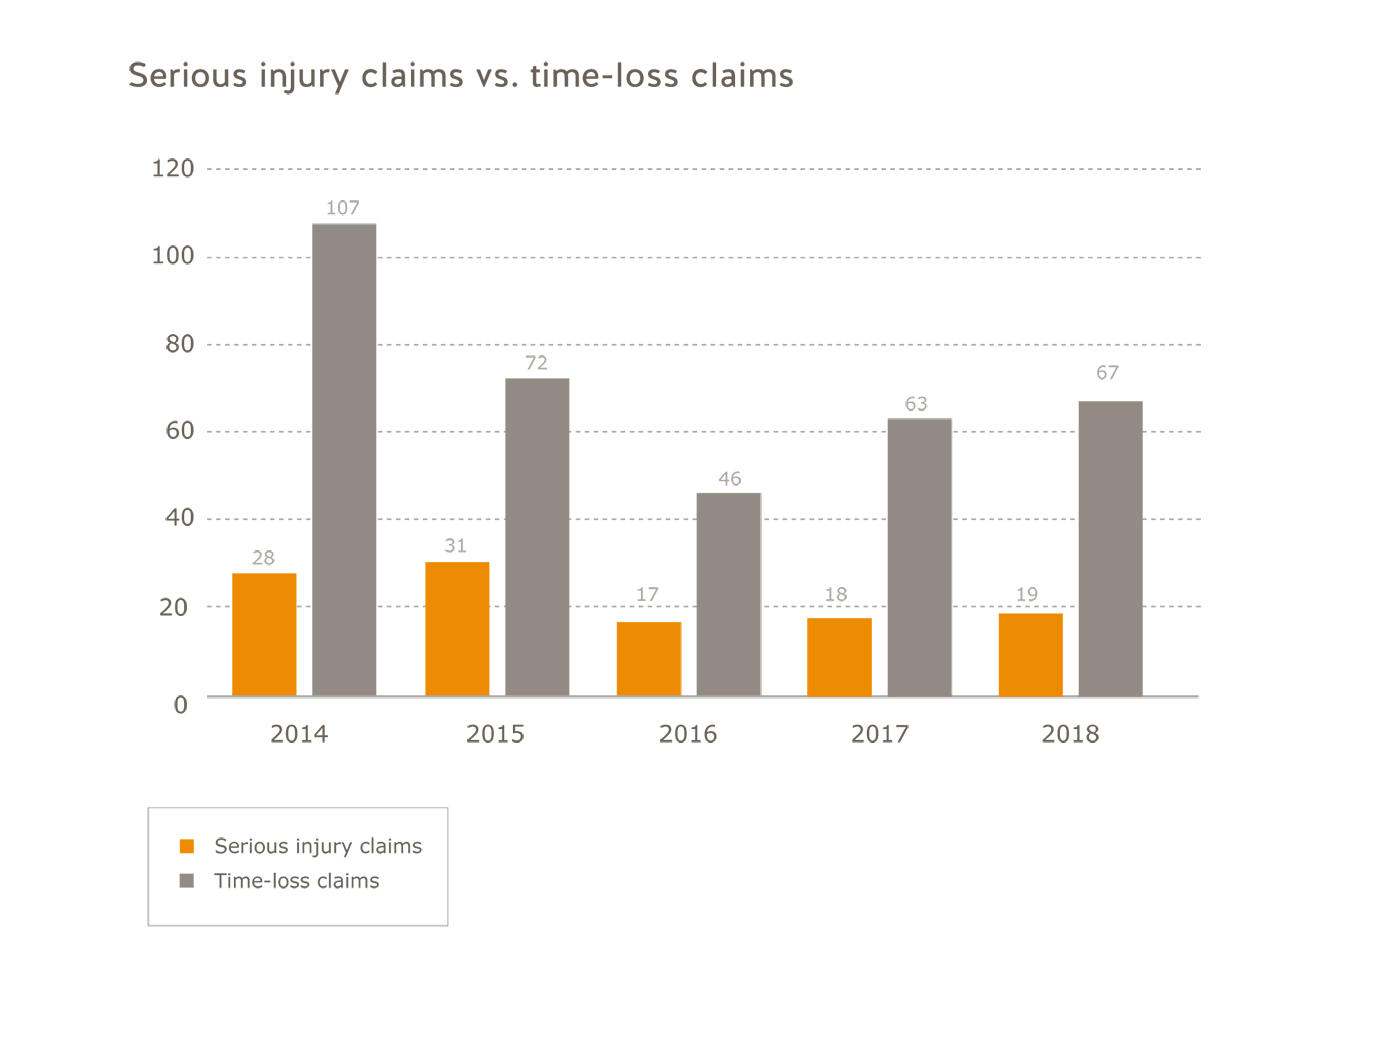 Oil and gas serious injury claims vs. time-loss claims for 2014 to 2018. Serious injury claims: 2014=28; 2015=31; 2016=17; 2017=18; 2018=19. Time-loss claims: 2014=107; 2015=72; 2016=46; 2017=63; 2018=67.